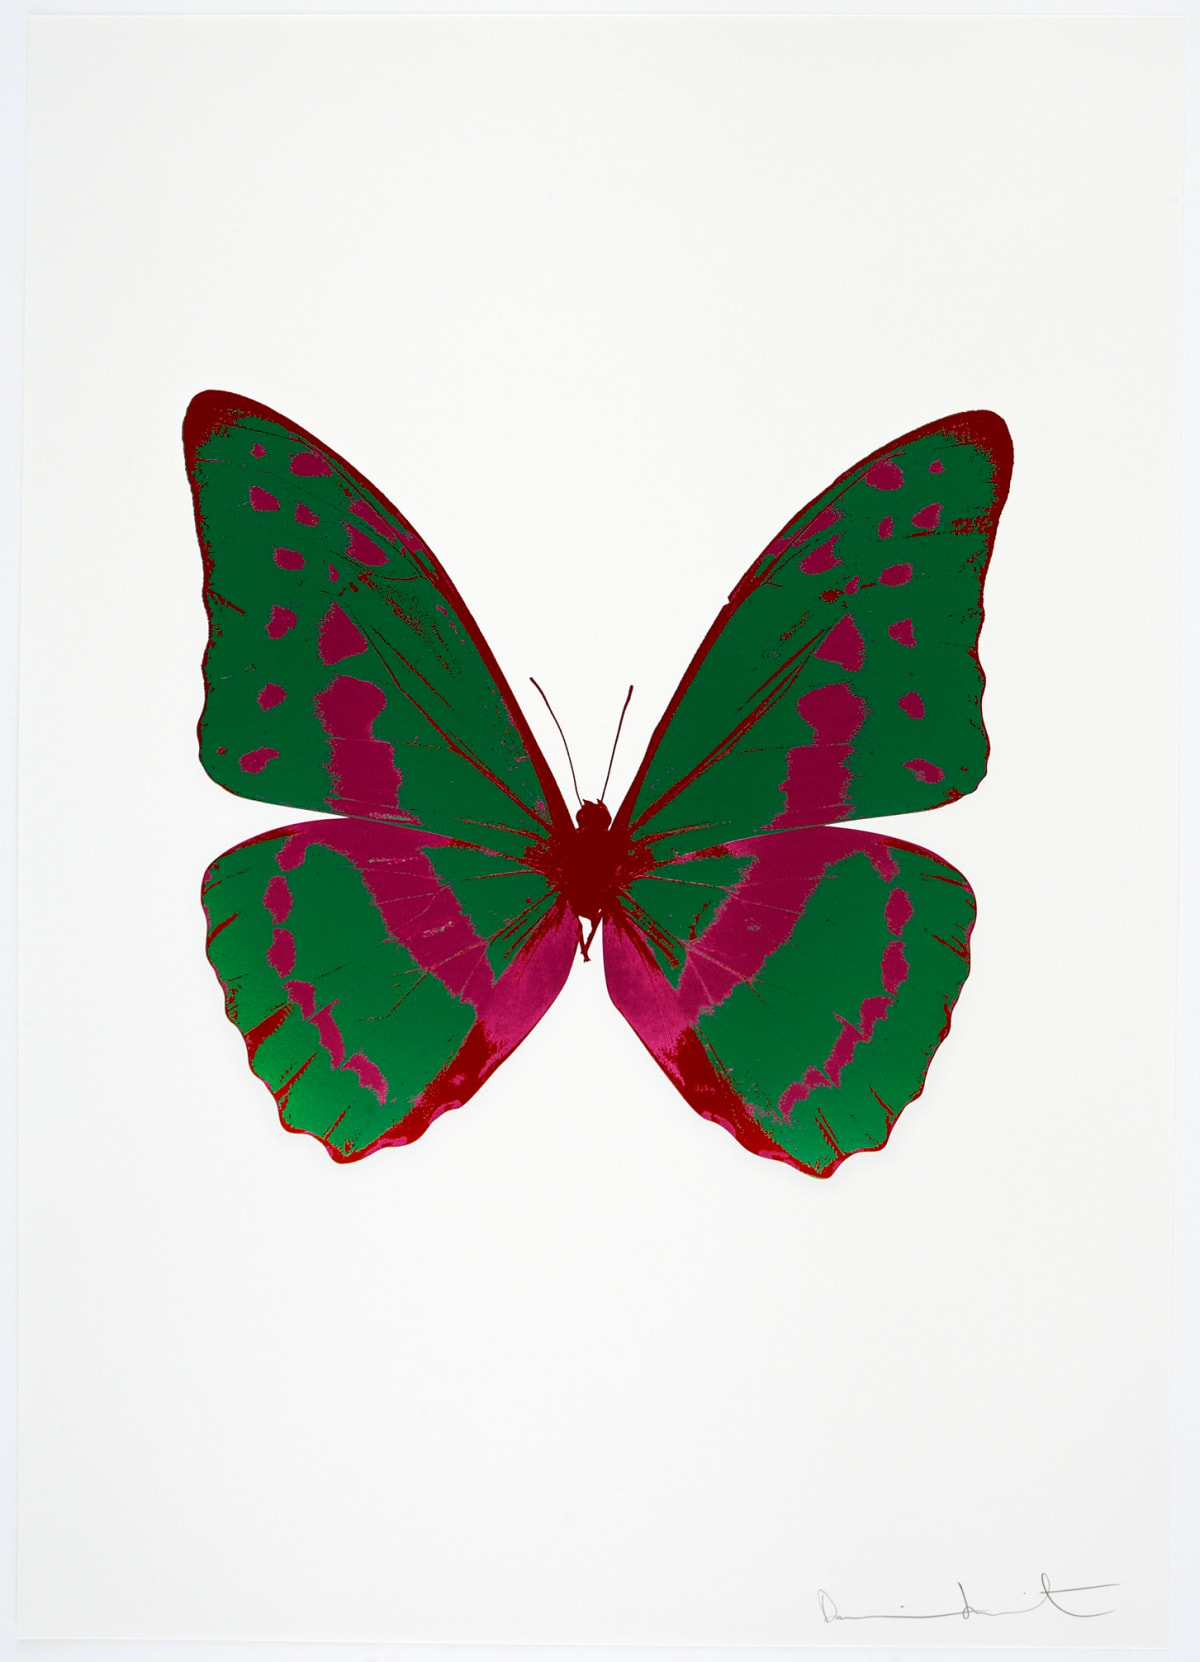 Damien Hirst The Souls III - Emerald Green/Fuchsia Pink/Chilli Red, 2010 3 colour foil block on 300gsm Arches 88 archival paper. Signed and numbered. Published by Paul Stolper and Other Criteria 72 x 51cm OC7898 / 660-1 Edition of 15